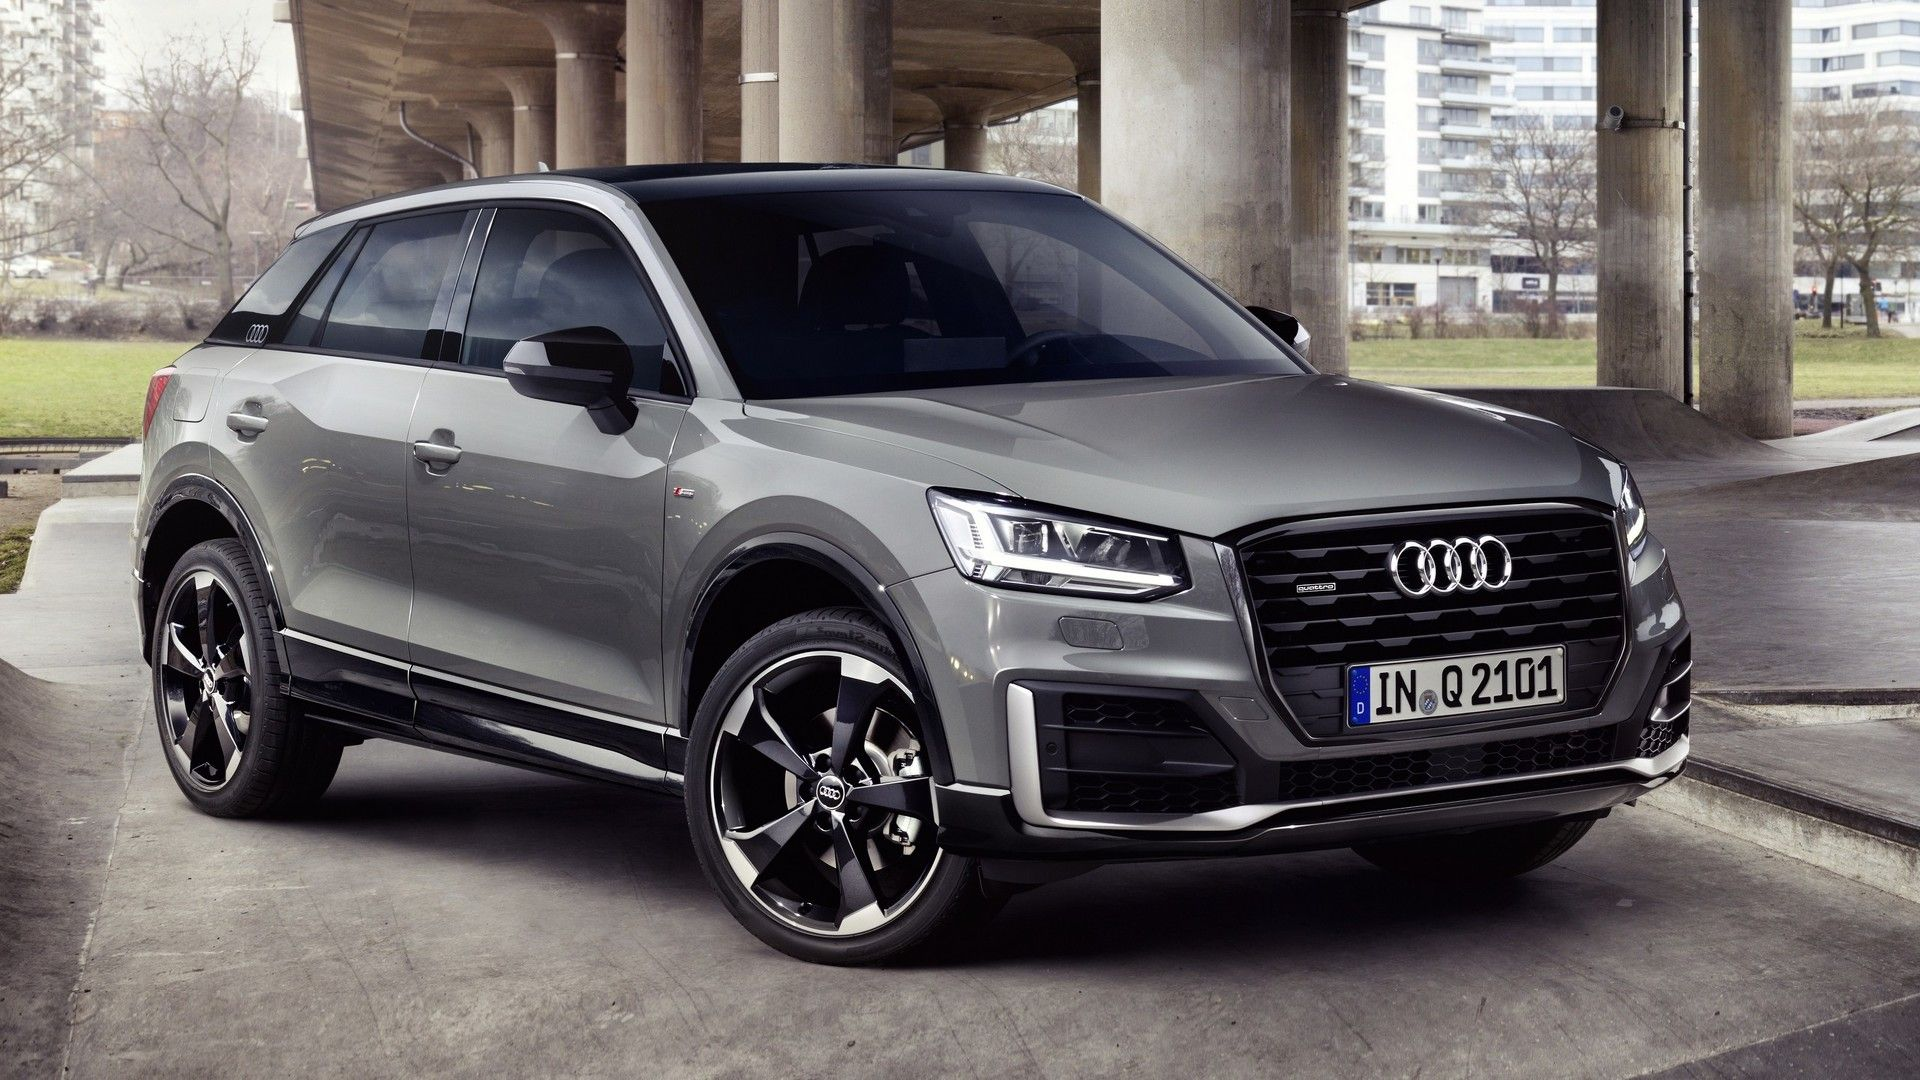 Audi Q2 Edition 1 Announced With Cosmetic Tweaks Audi Audi